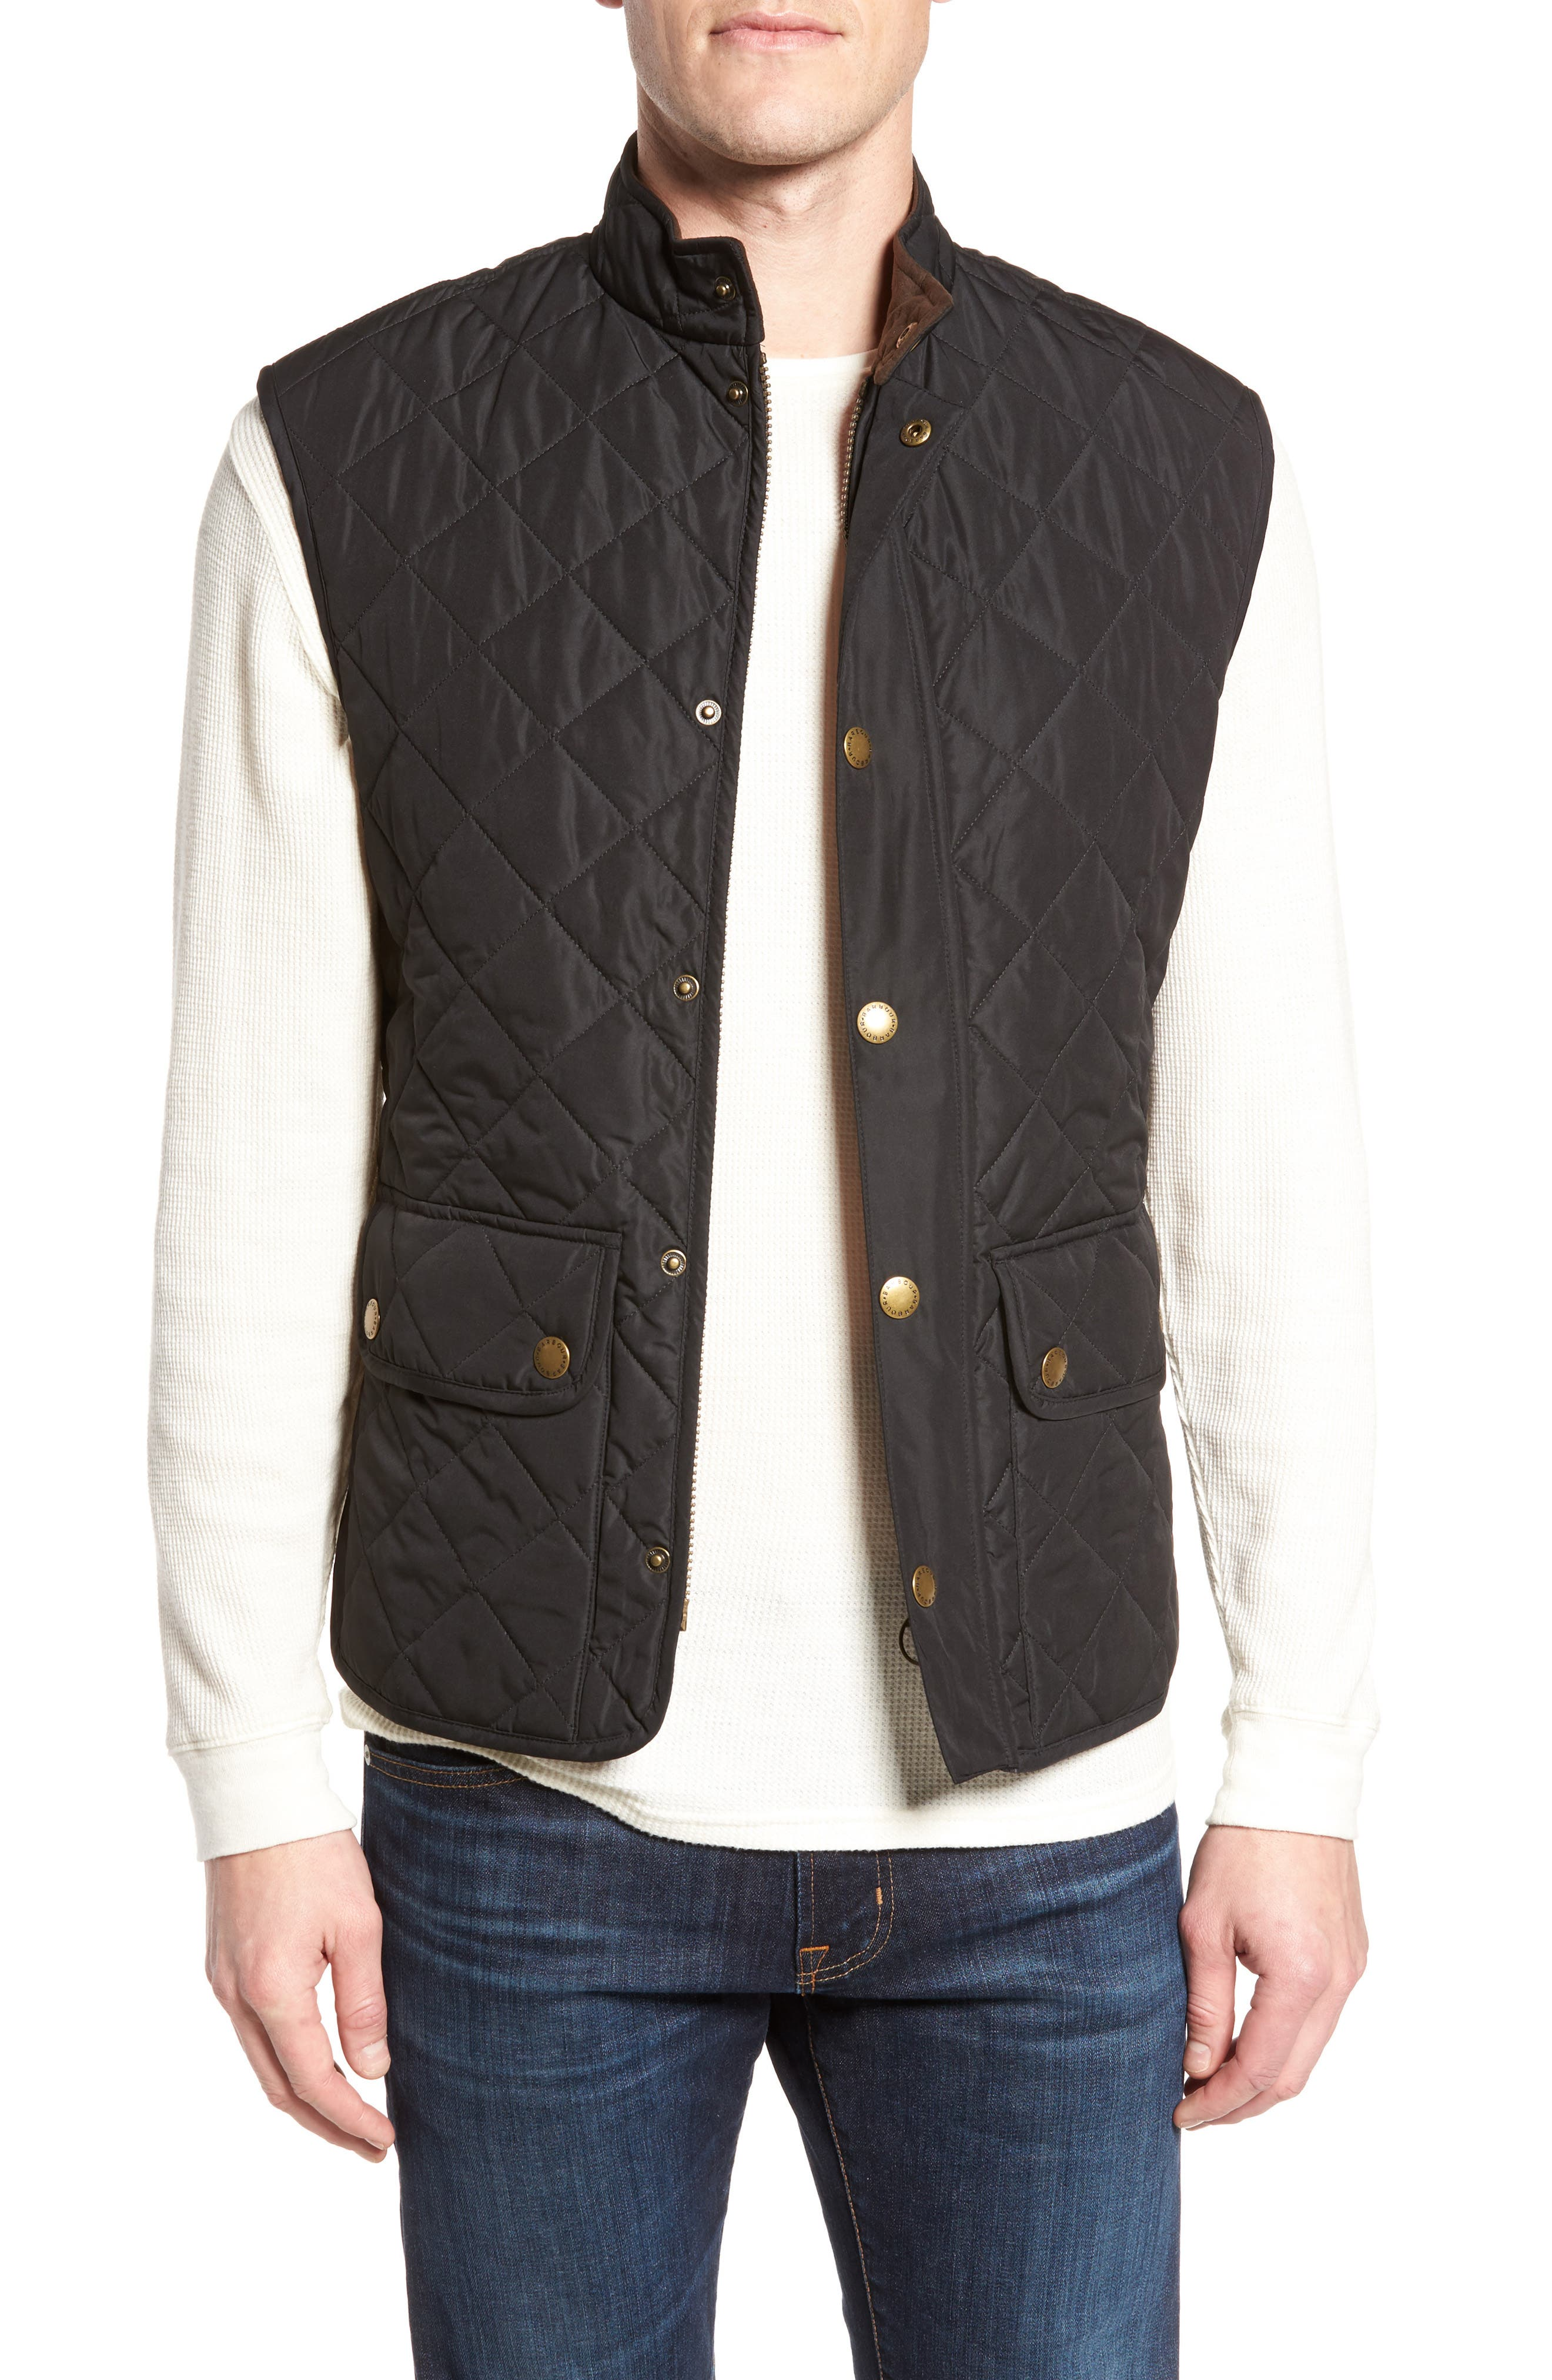 'Lowerdale' Trim Fit Quilted Vest,                             Main thumbnail 1, color,                             Black/ Red